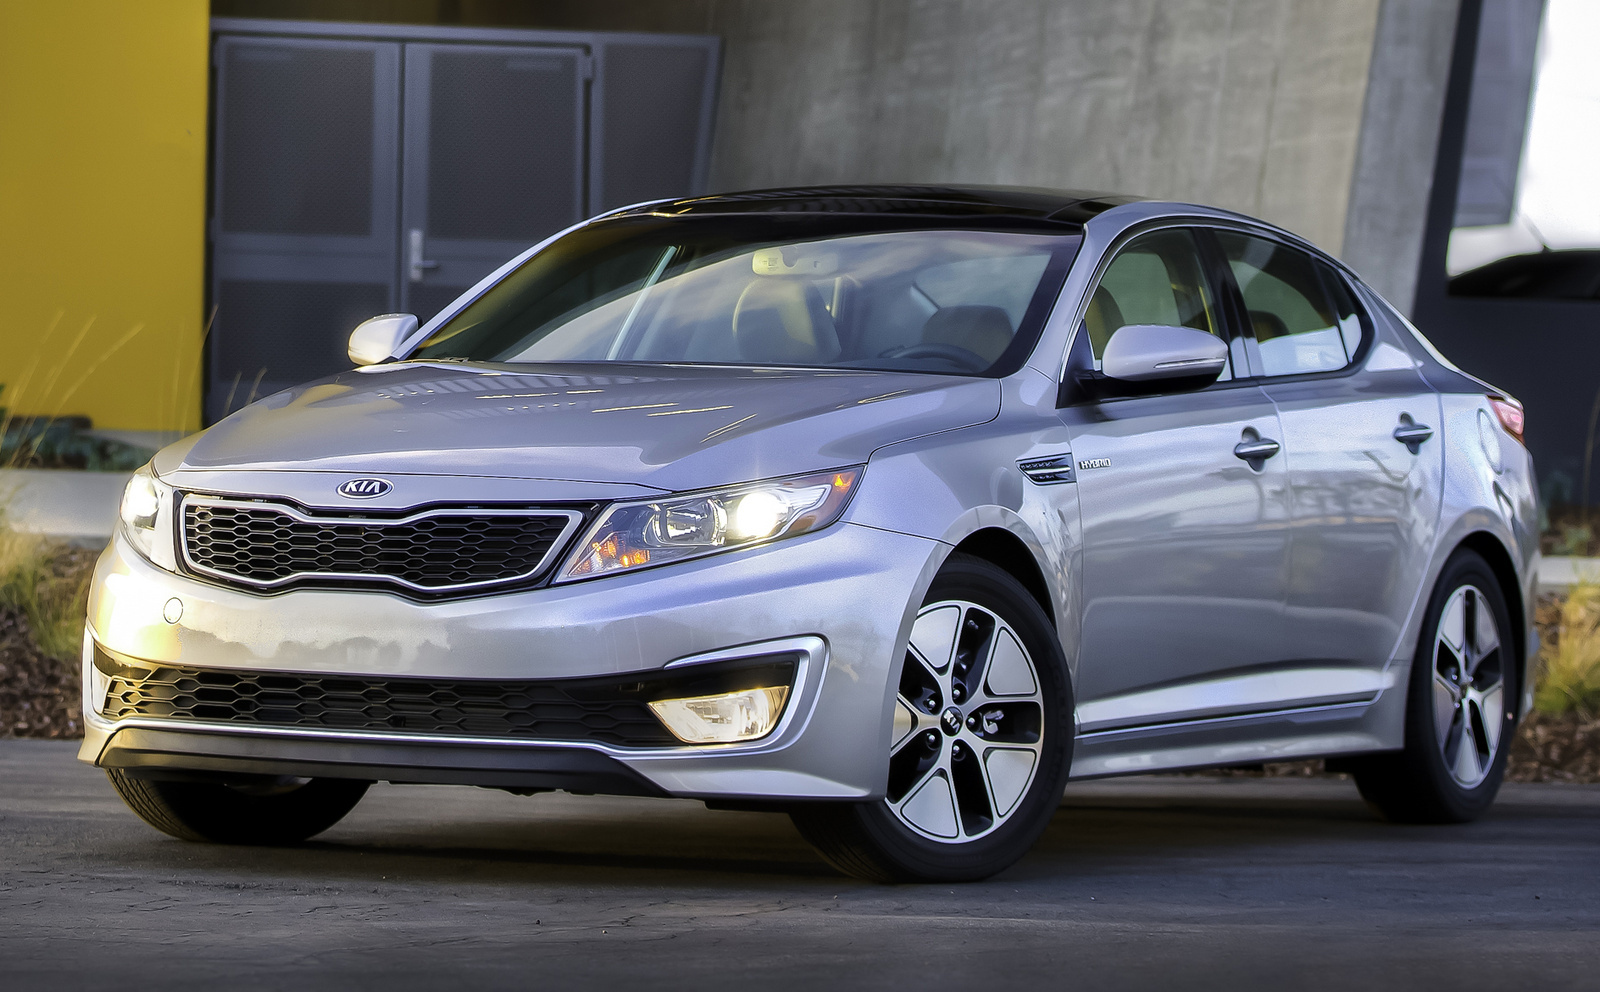 kia york h news show preview new optima auto video